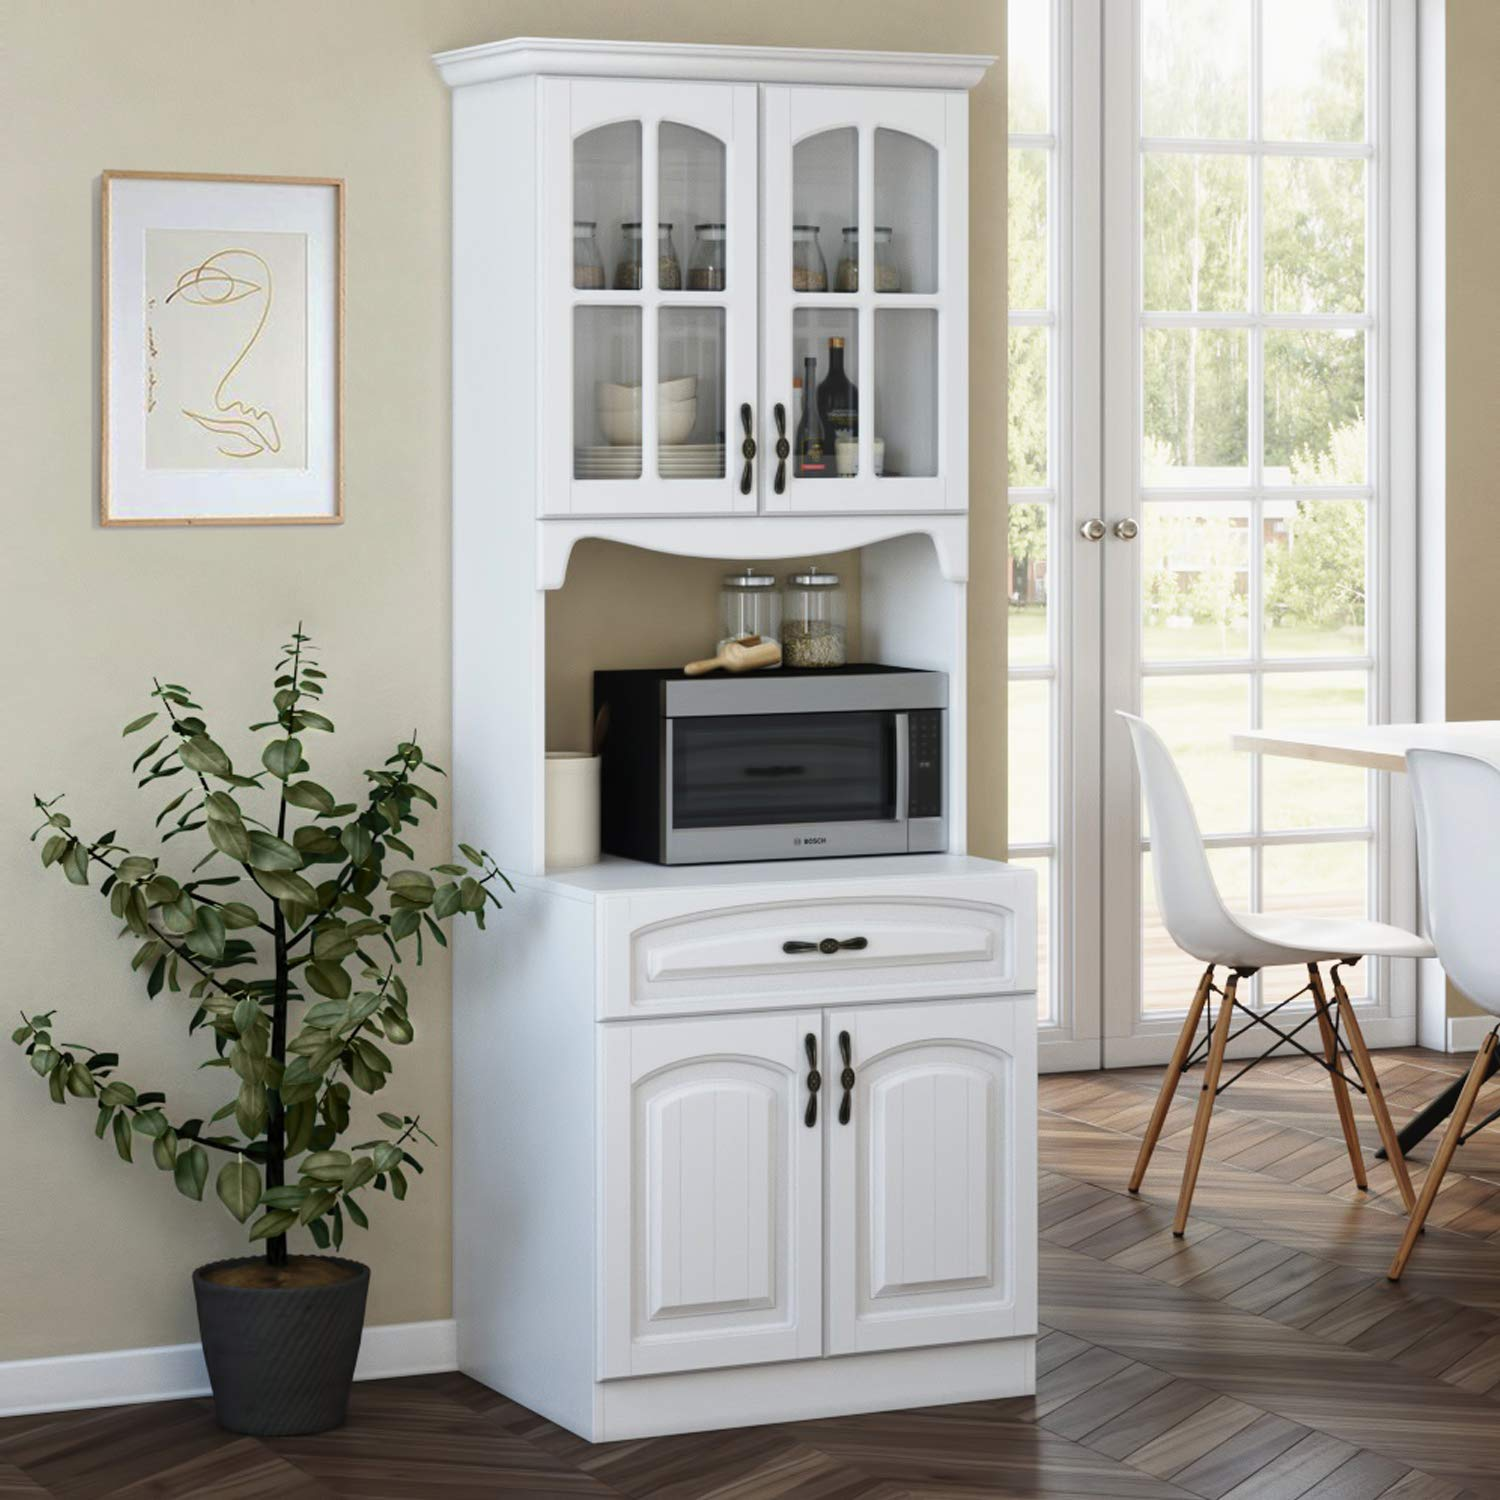 Kitchen Storage Cabinet – Kitchen Cabinet with Storage Shelves and  Microwave Stand – Pantry Cabinet - Kitchen China Cabinet – Kitchen and  Pantry Hutch ...